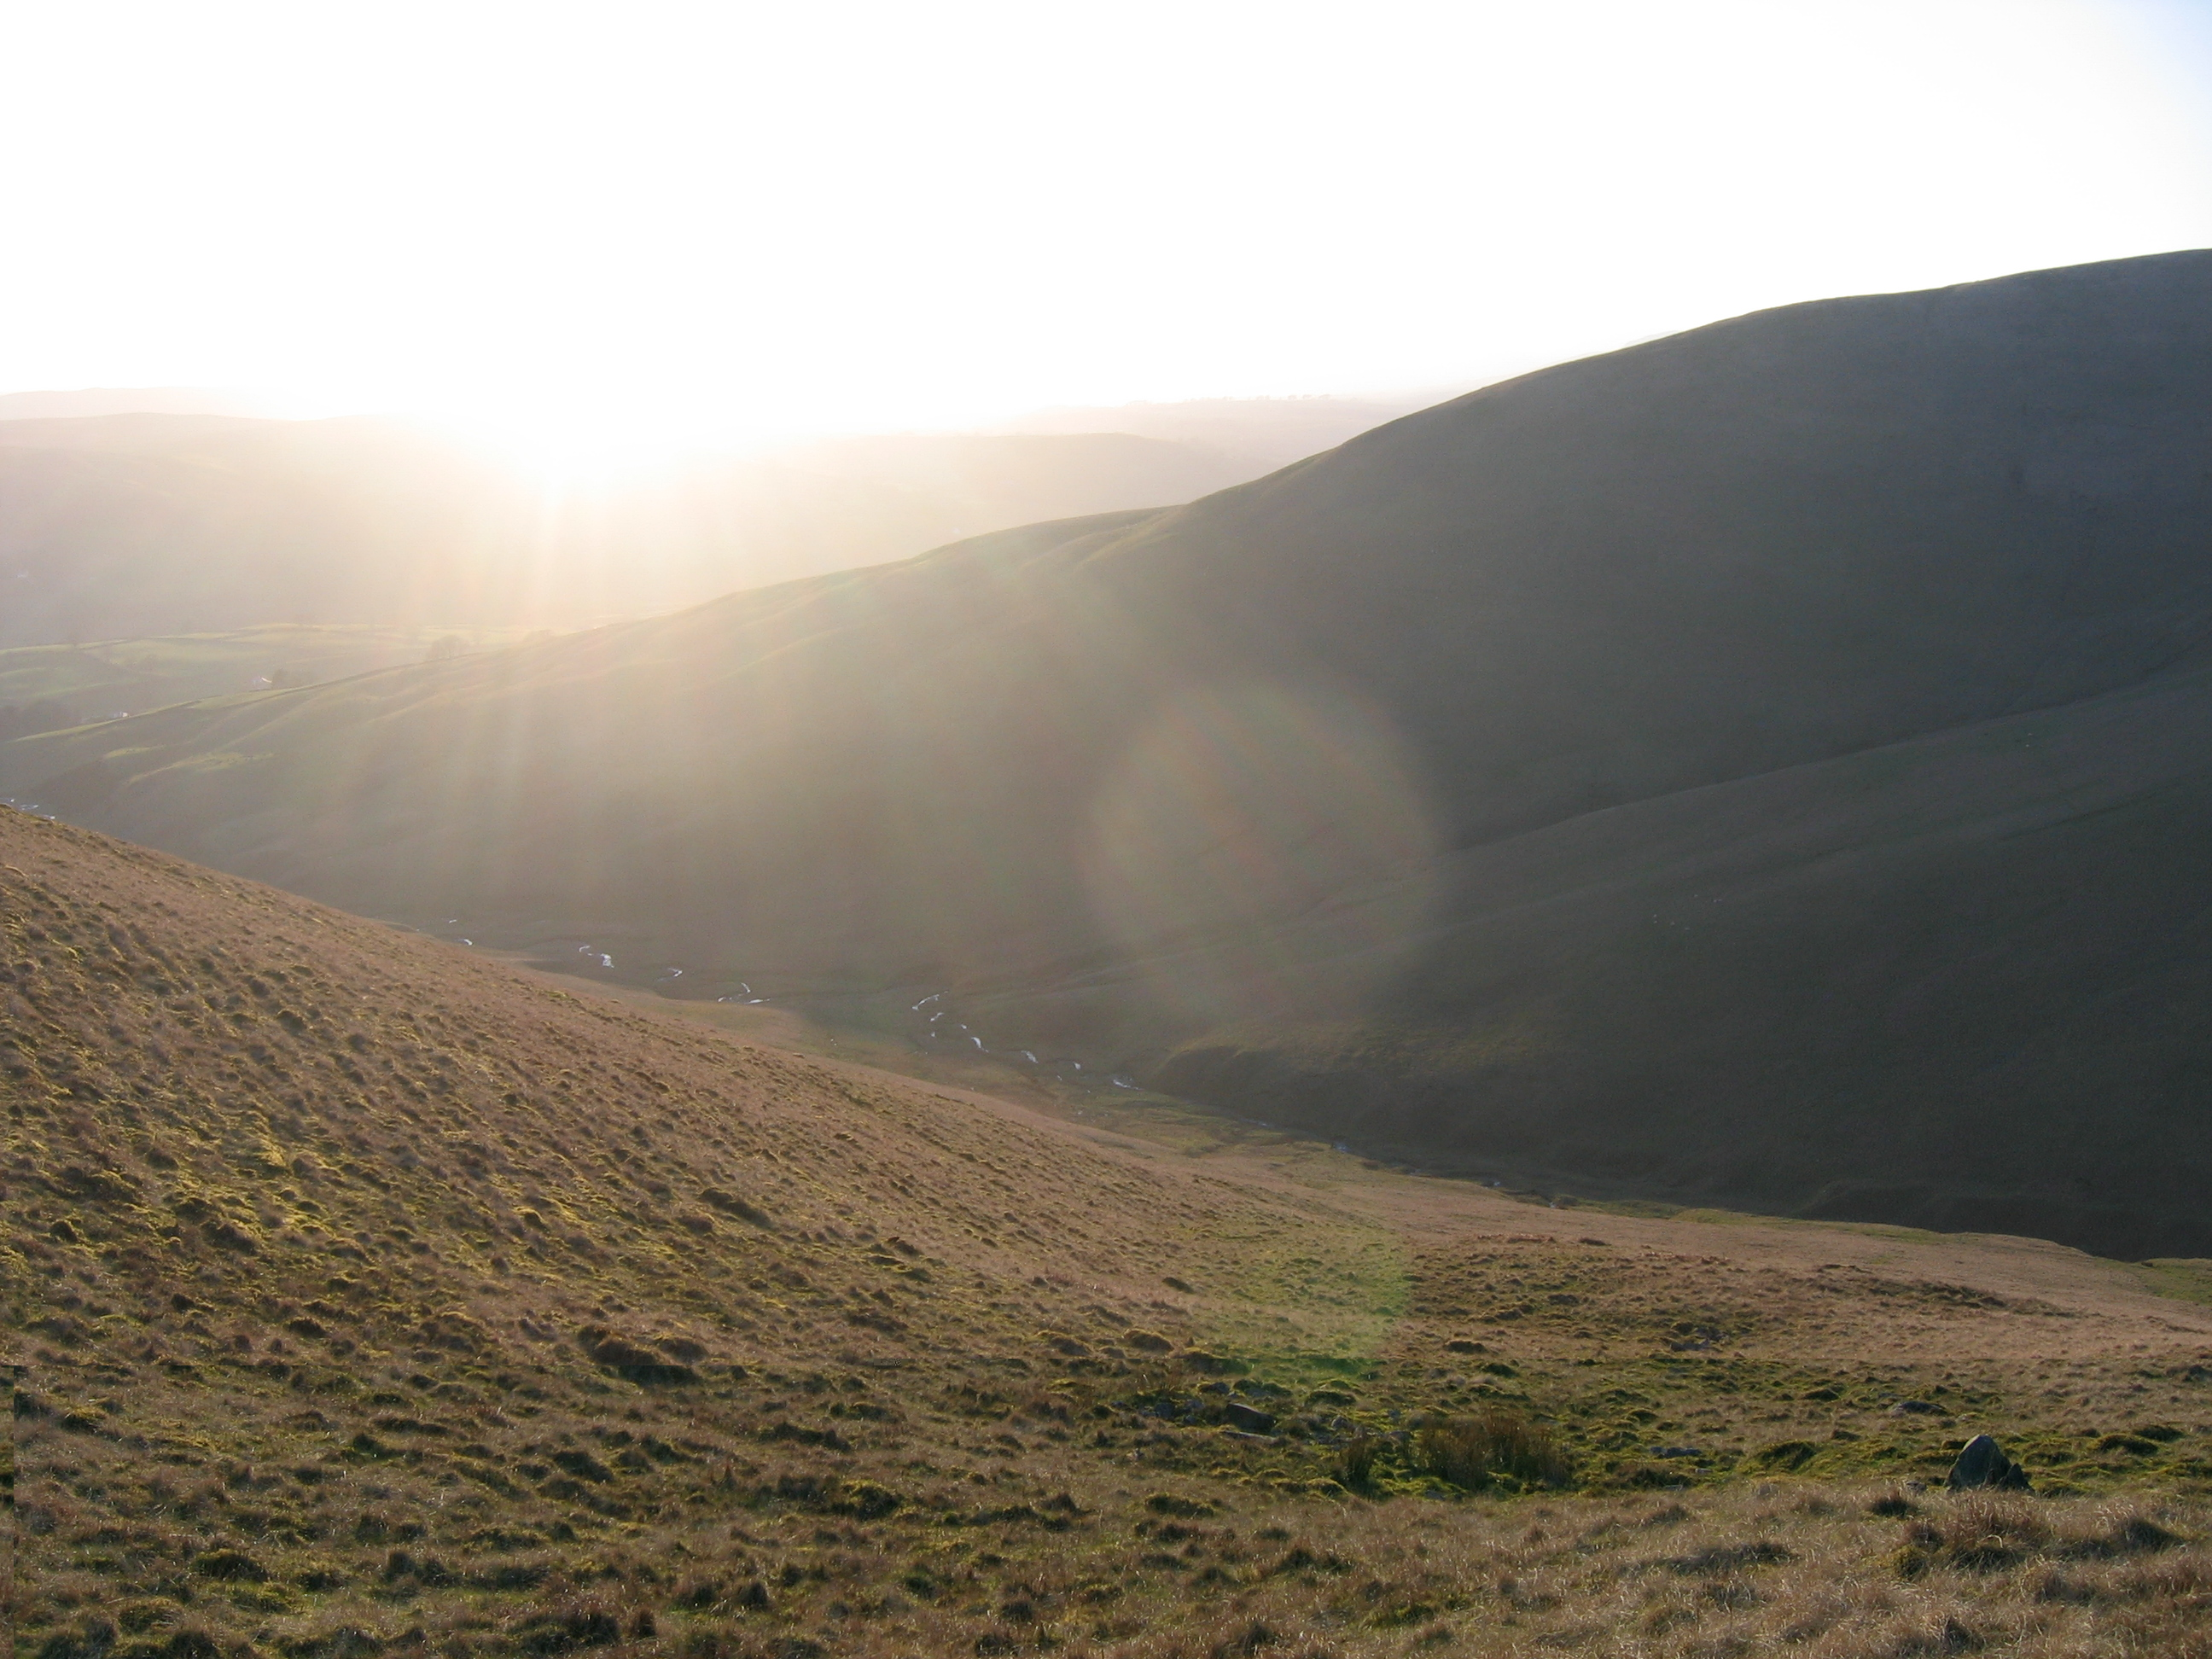 hills in evening light, bright sun